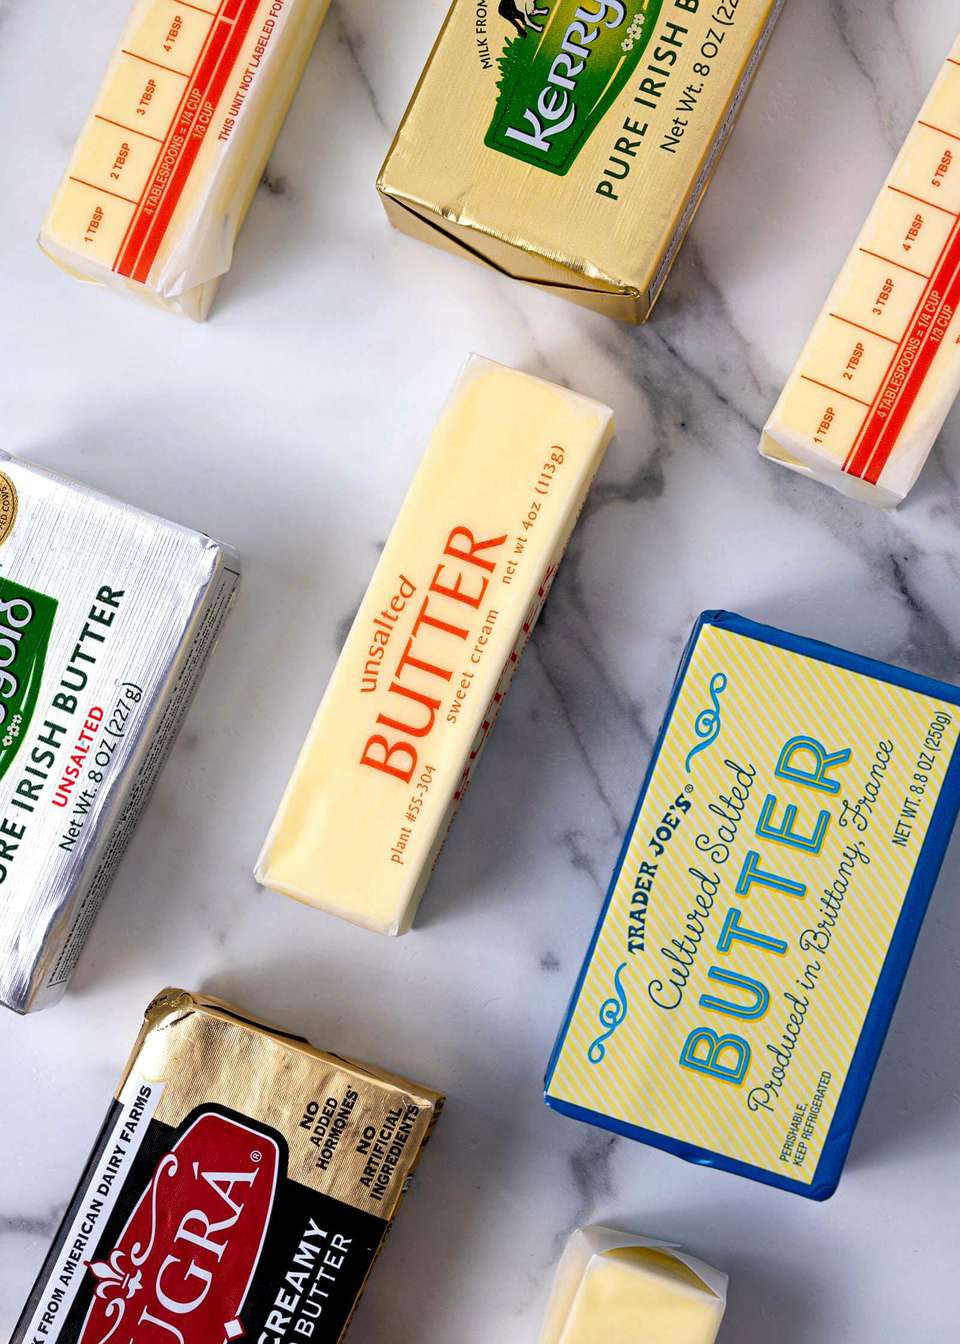 Unsalted and salted butter sticks on marble